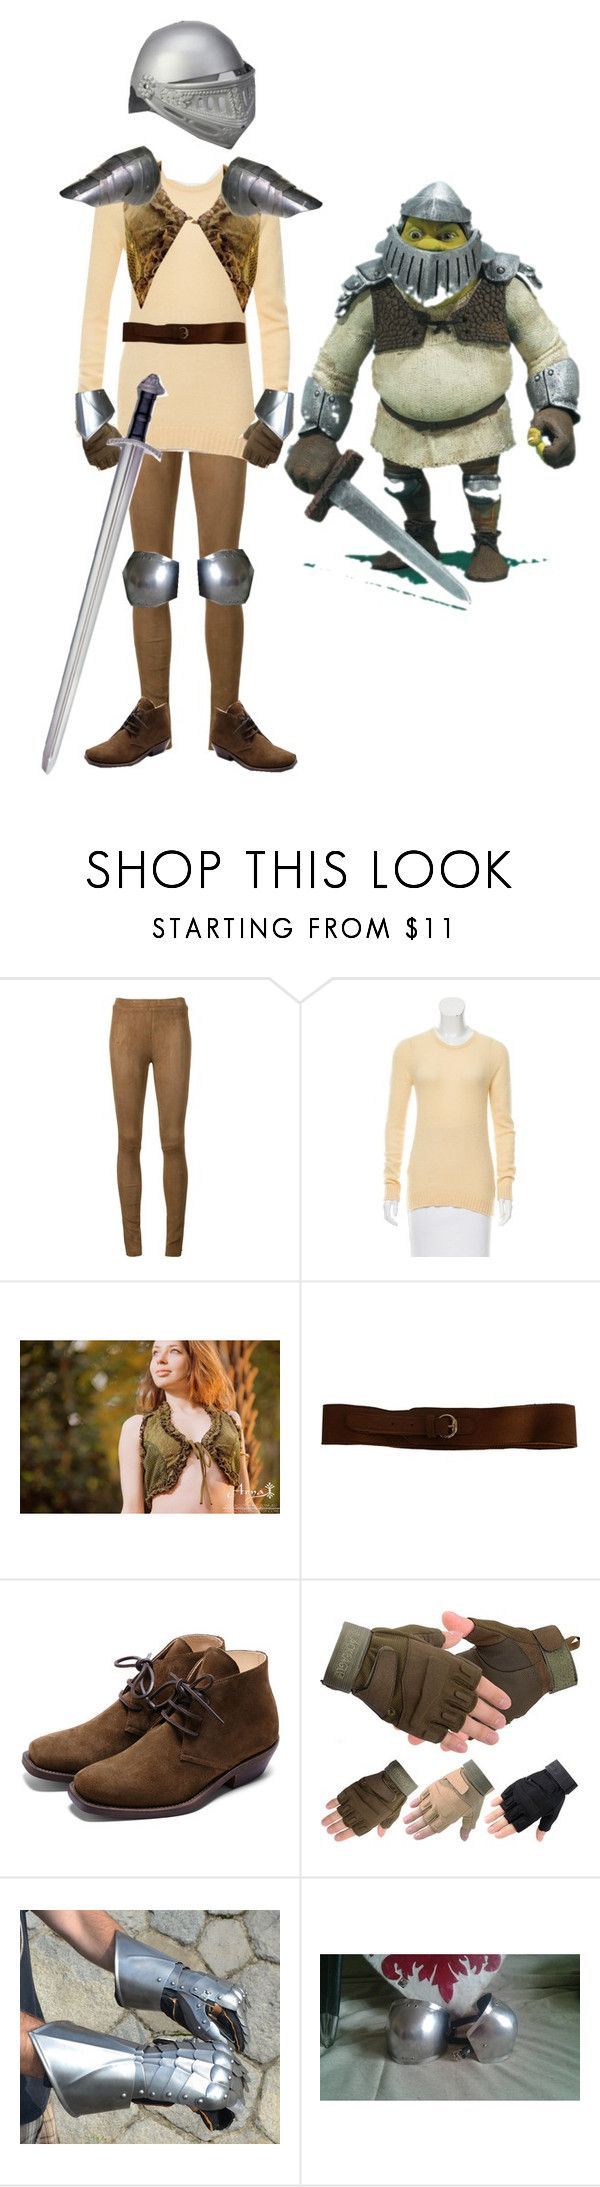 """""""What kind of knight ARE you?"""" by thatgalaxygreaser ❤ liked on Polyvore featuring Beau Souci, Golden Goose, LES COMPOSANTES, Rupert Sanderson, men's fashion, menswear and shrek"""